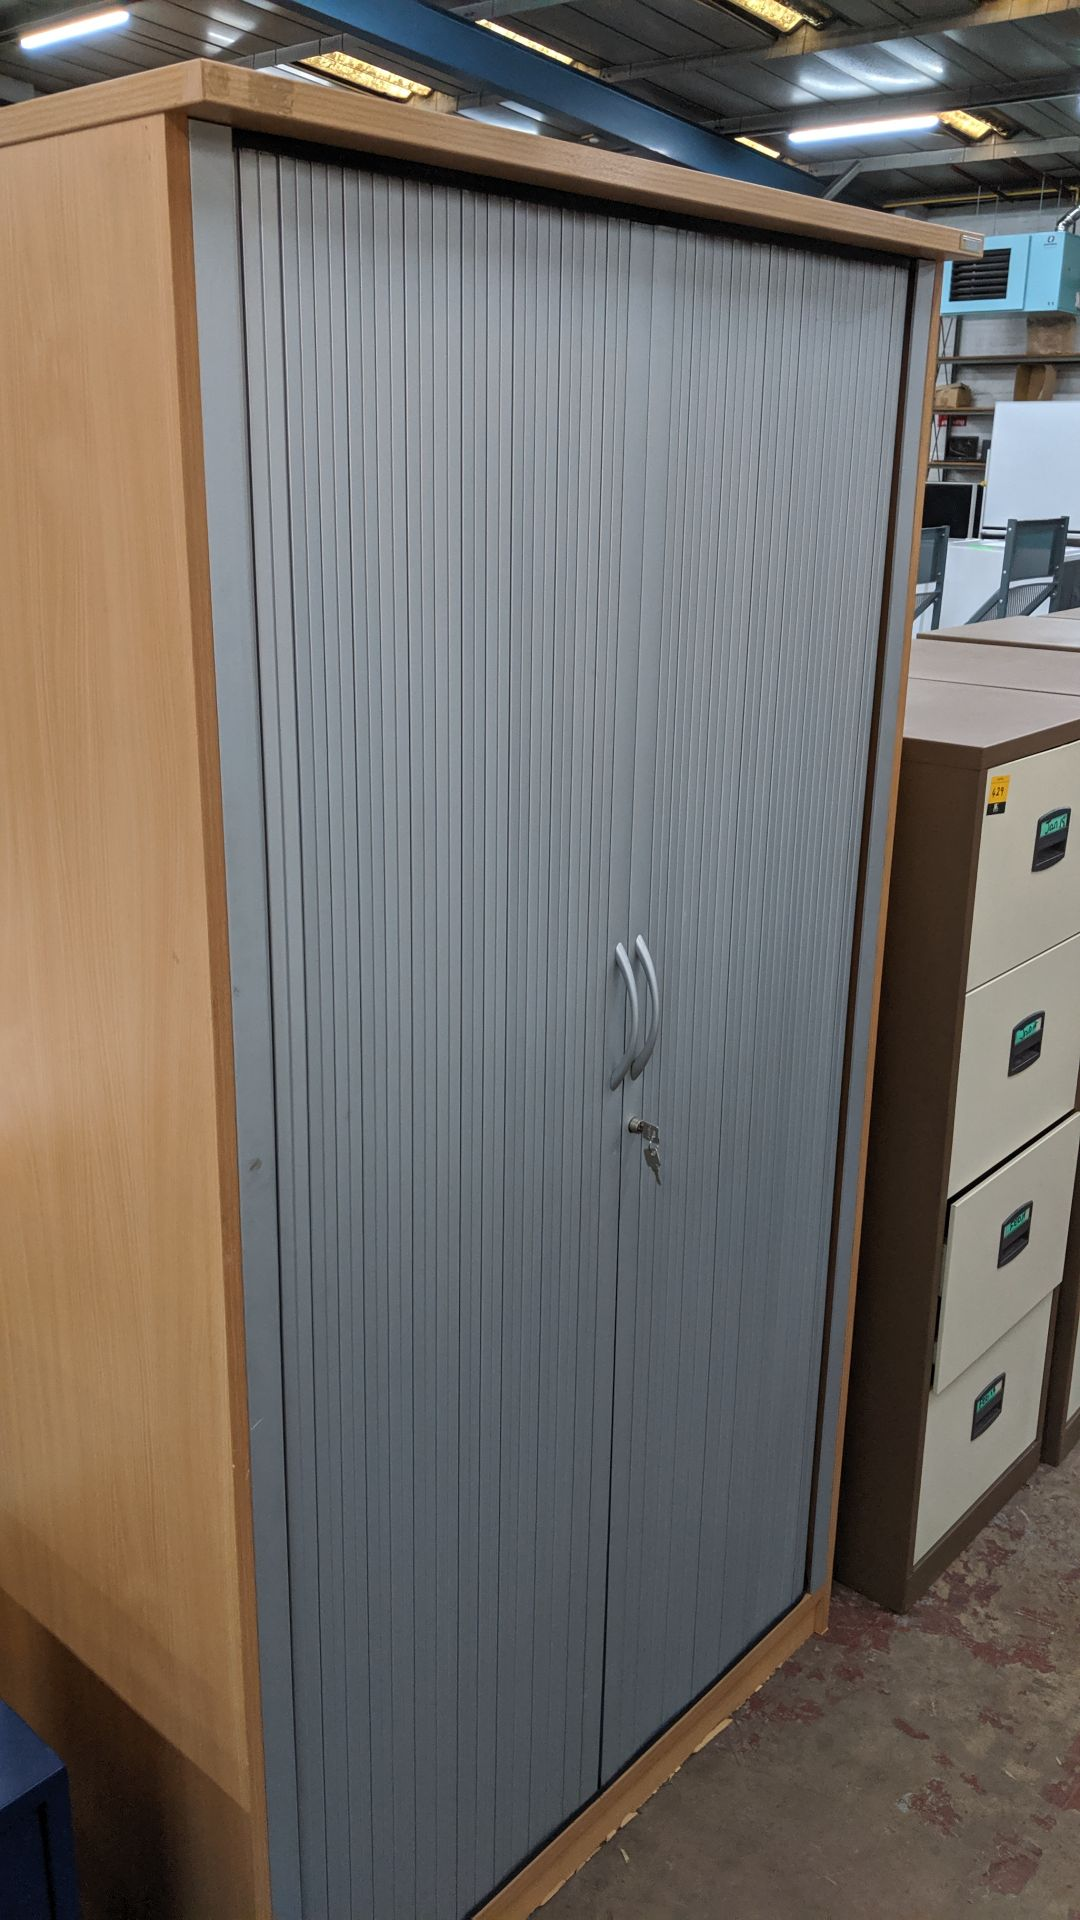 Lot 430 - Tambour-front tall stationery cupboard with key. This is one of a large number of lots used/owned by